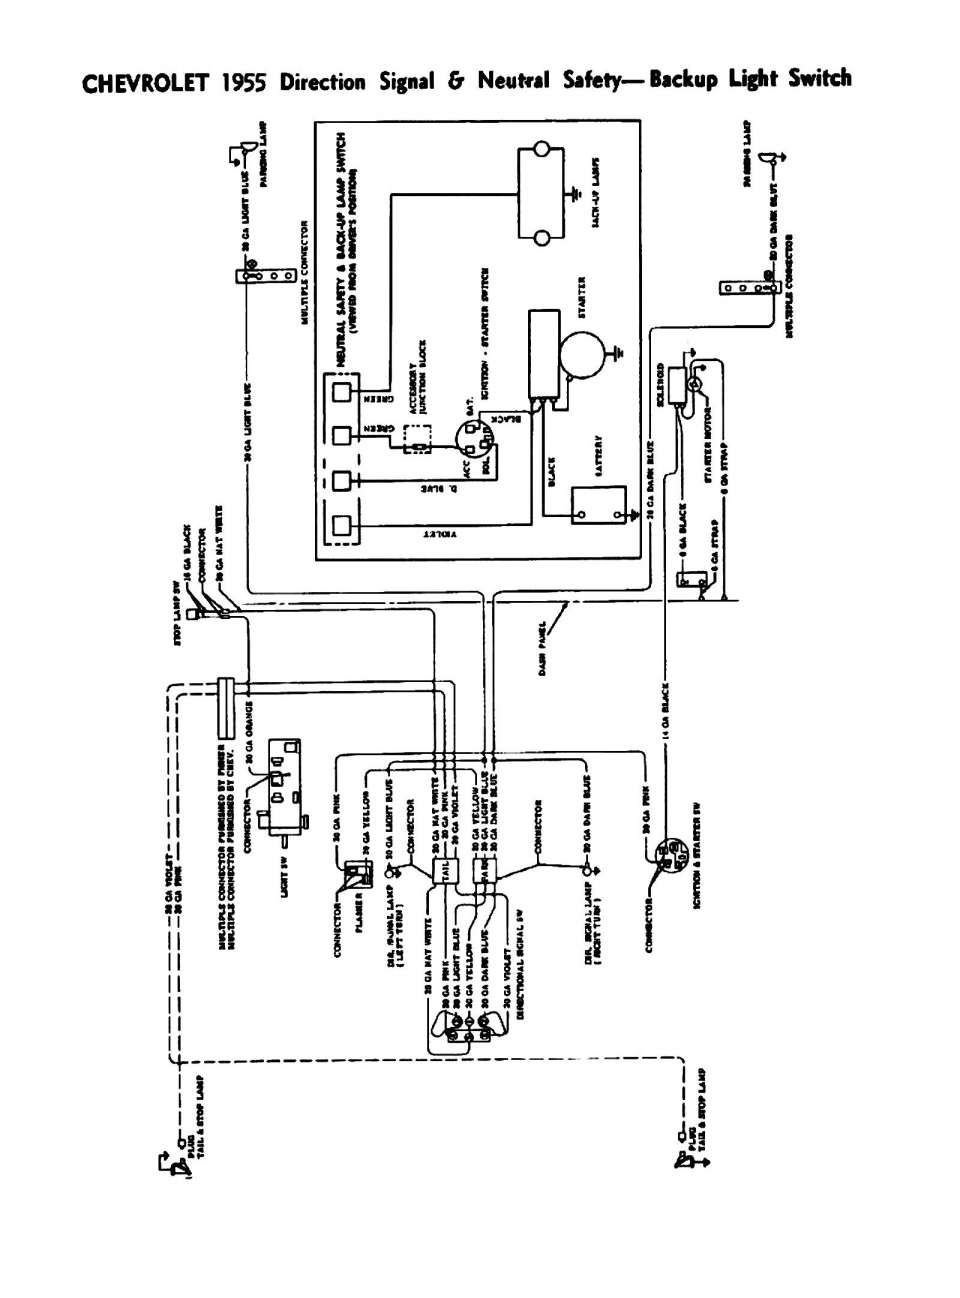 16 1957 Chevy Truck Ignition Switch Wiring Diagram Electrical Wiring Diagram Chevy Trucks Safety Switch